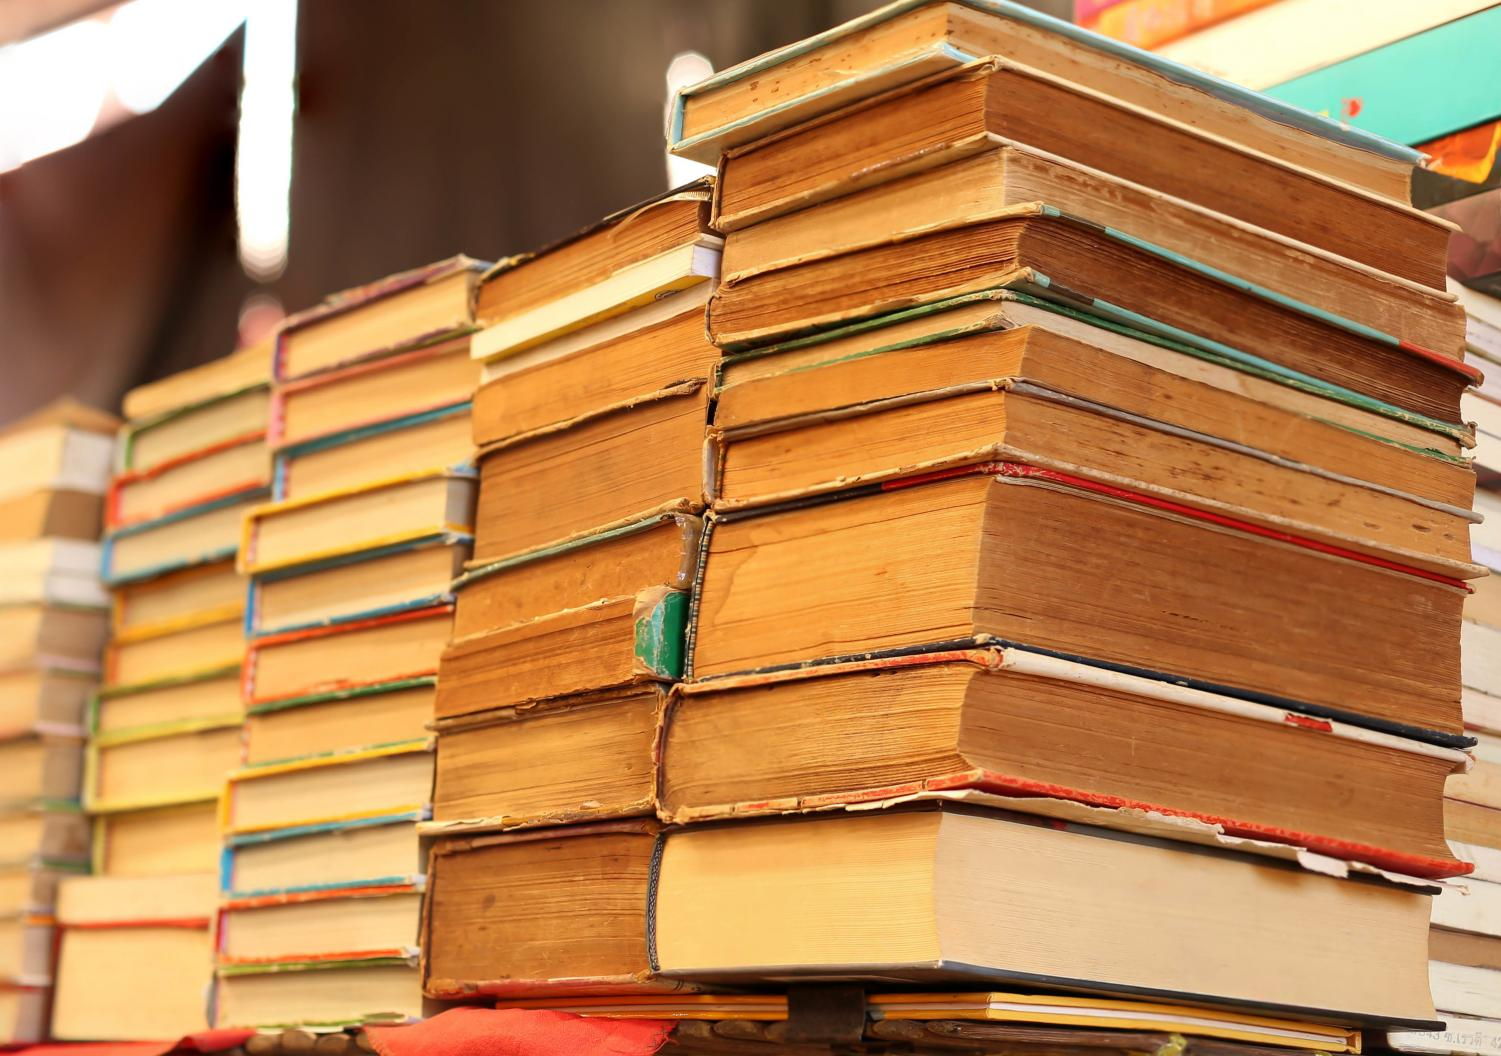 The Friends of the Library provide a variety of gently used books for students to peruse.  Image courtesy of CanStockPhoto (www.canstockphoto.com)